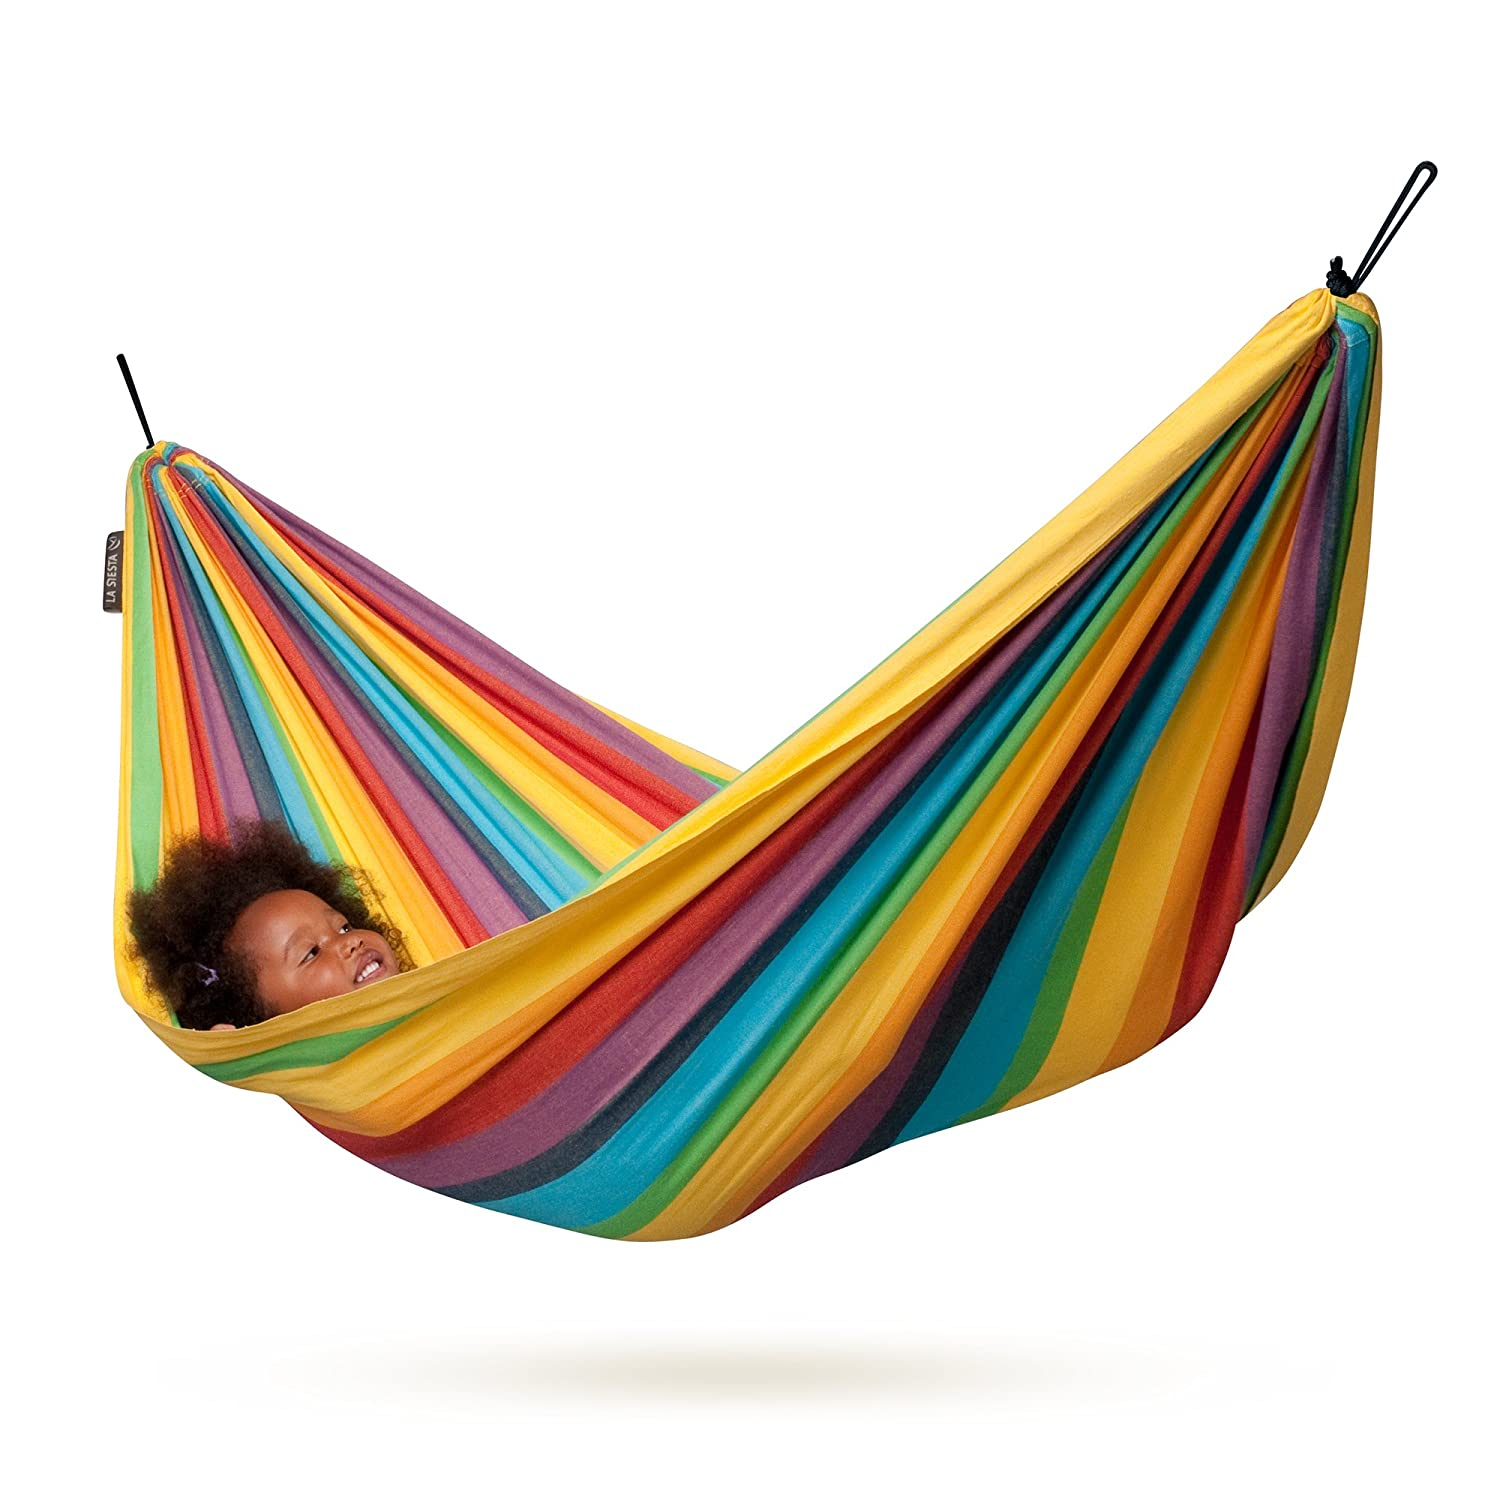 amazon    la siesta iri rainbow   cotton kids hammock  garden  u0026 outdoor amazon    la siesta iri rainbow   cotton kids hammock  garden      rh   amazon